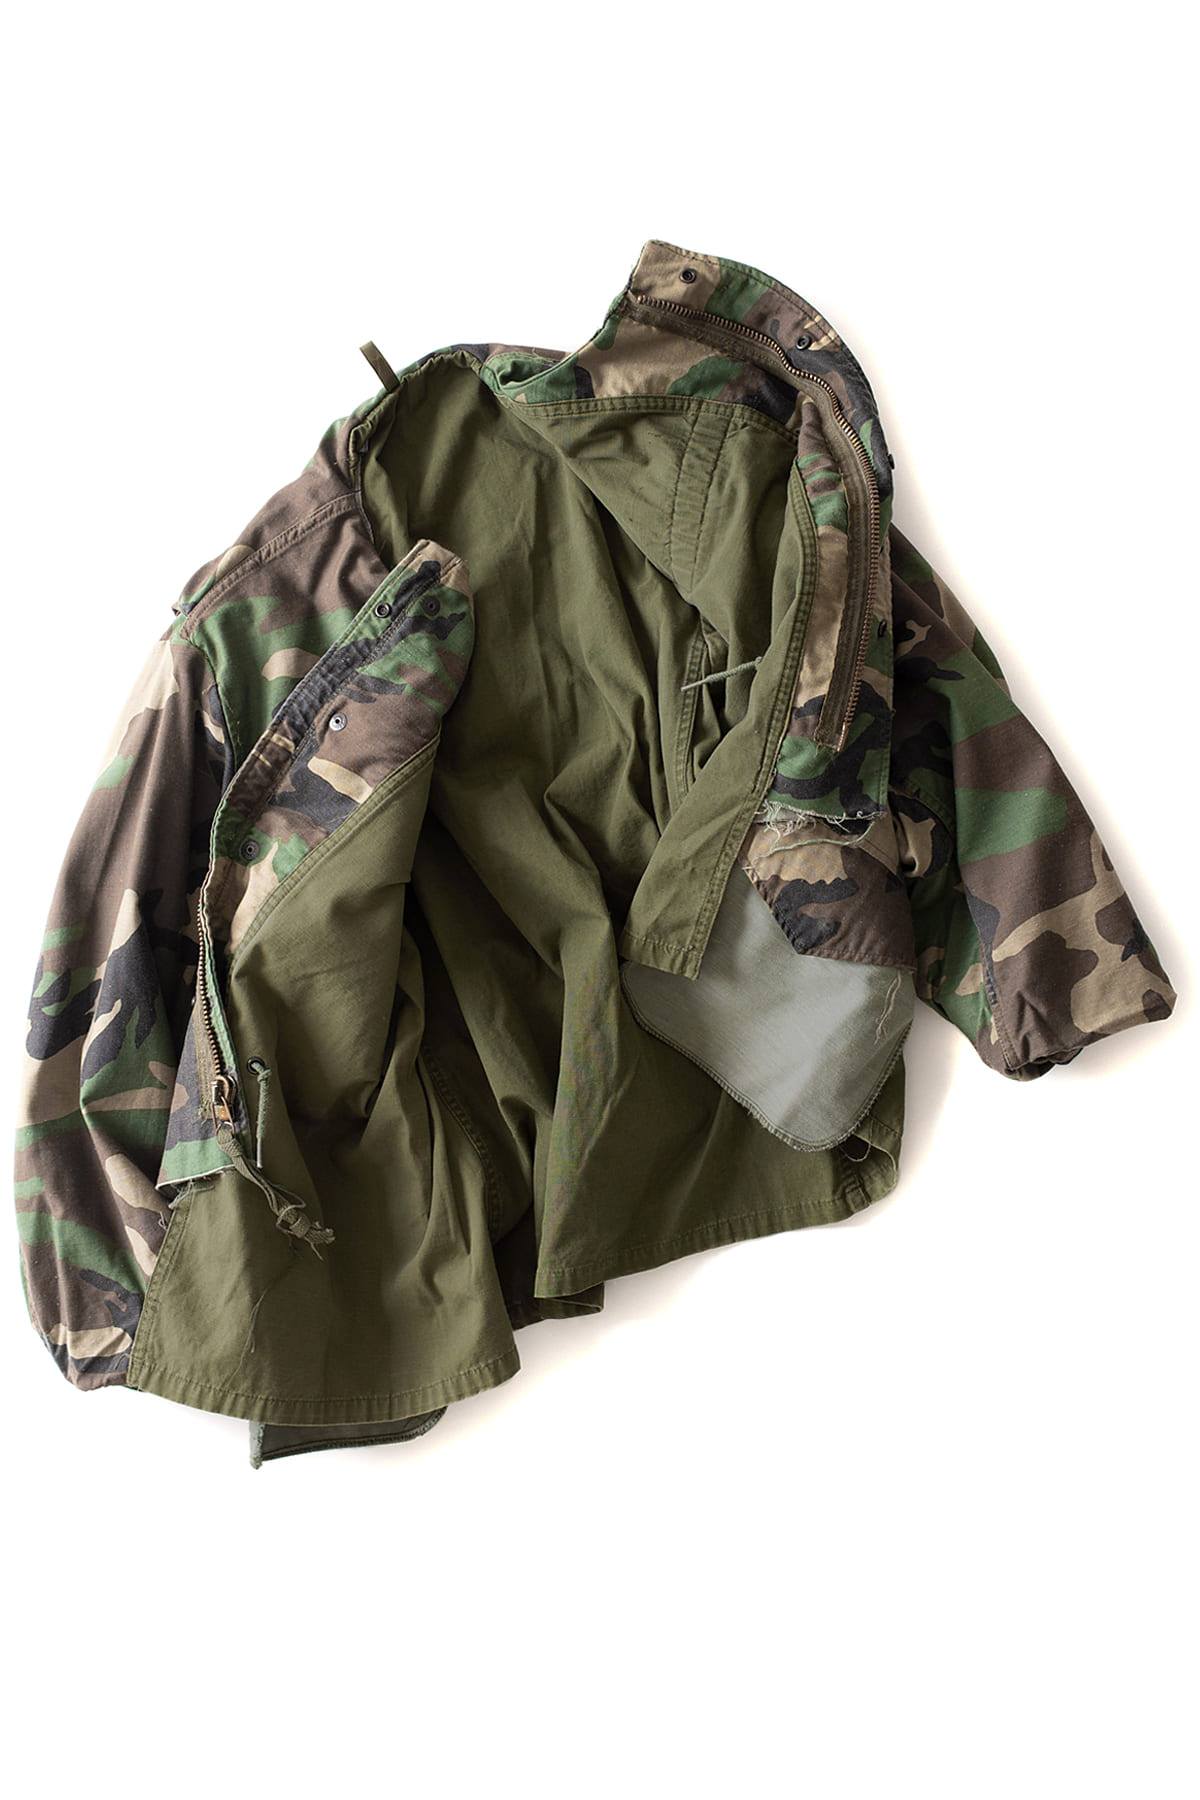 MADE by Sunny side up : M-65 Camo Jacket (A)